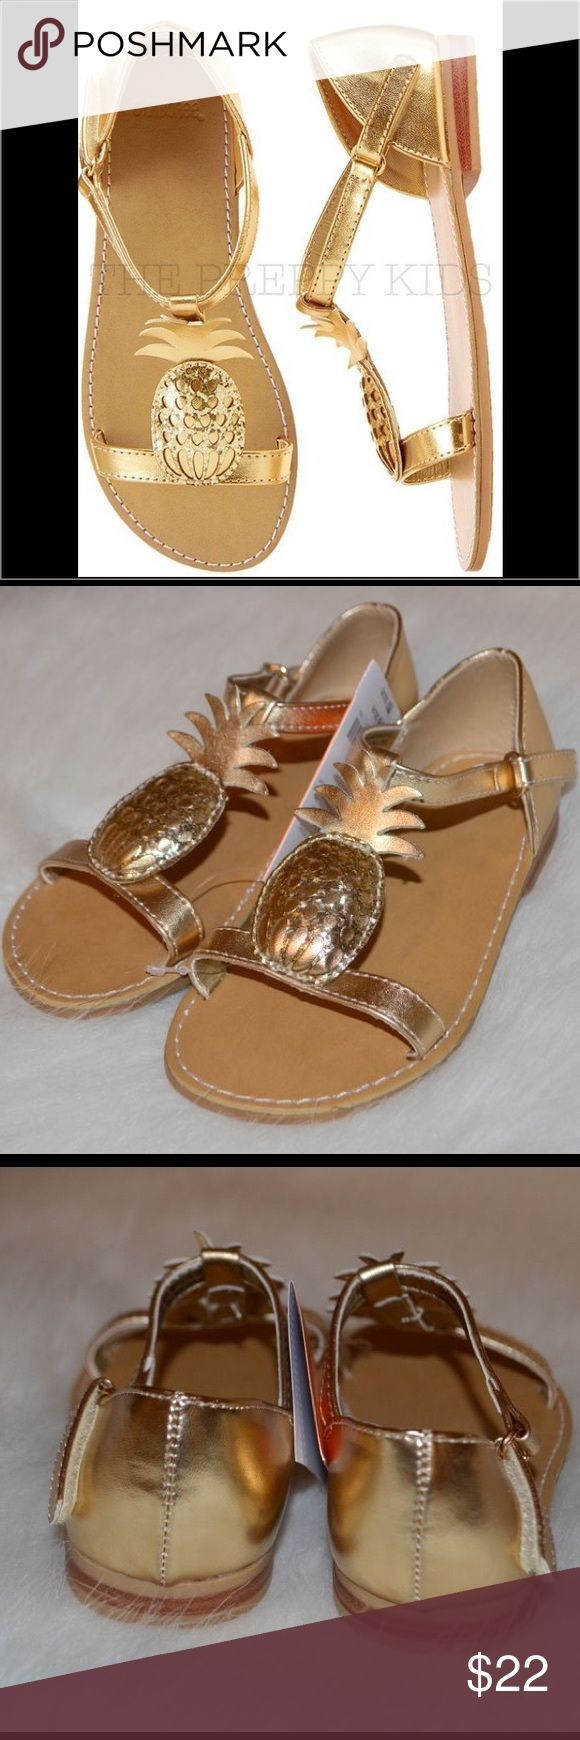 NWT Gymboree ISLAND CRUISE Gold Pineapple Sandals Metallic gold pineapple sandals that features textured 3D pineapples. They have a touch-close strap and has a textured sole. Perfect for any outfit!! ☀️☀️☀️☀️ Gymboree Shoes Sandals & Flip Flops